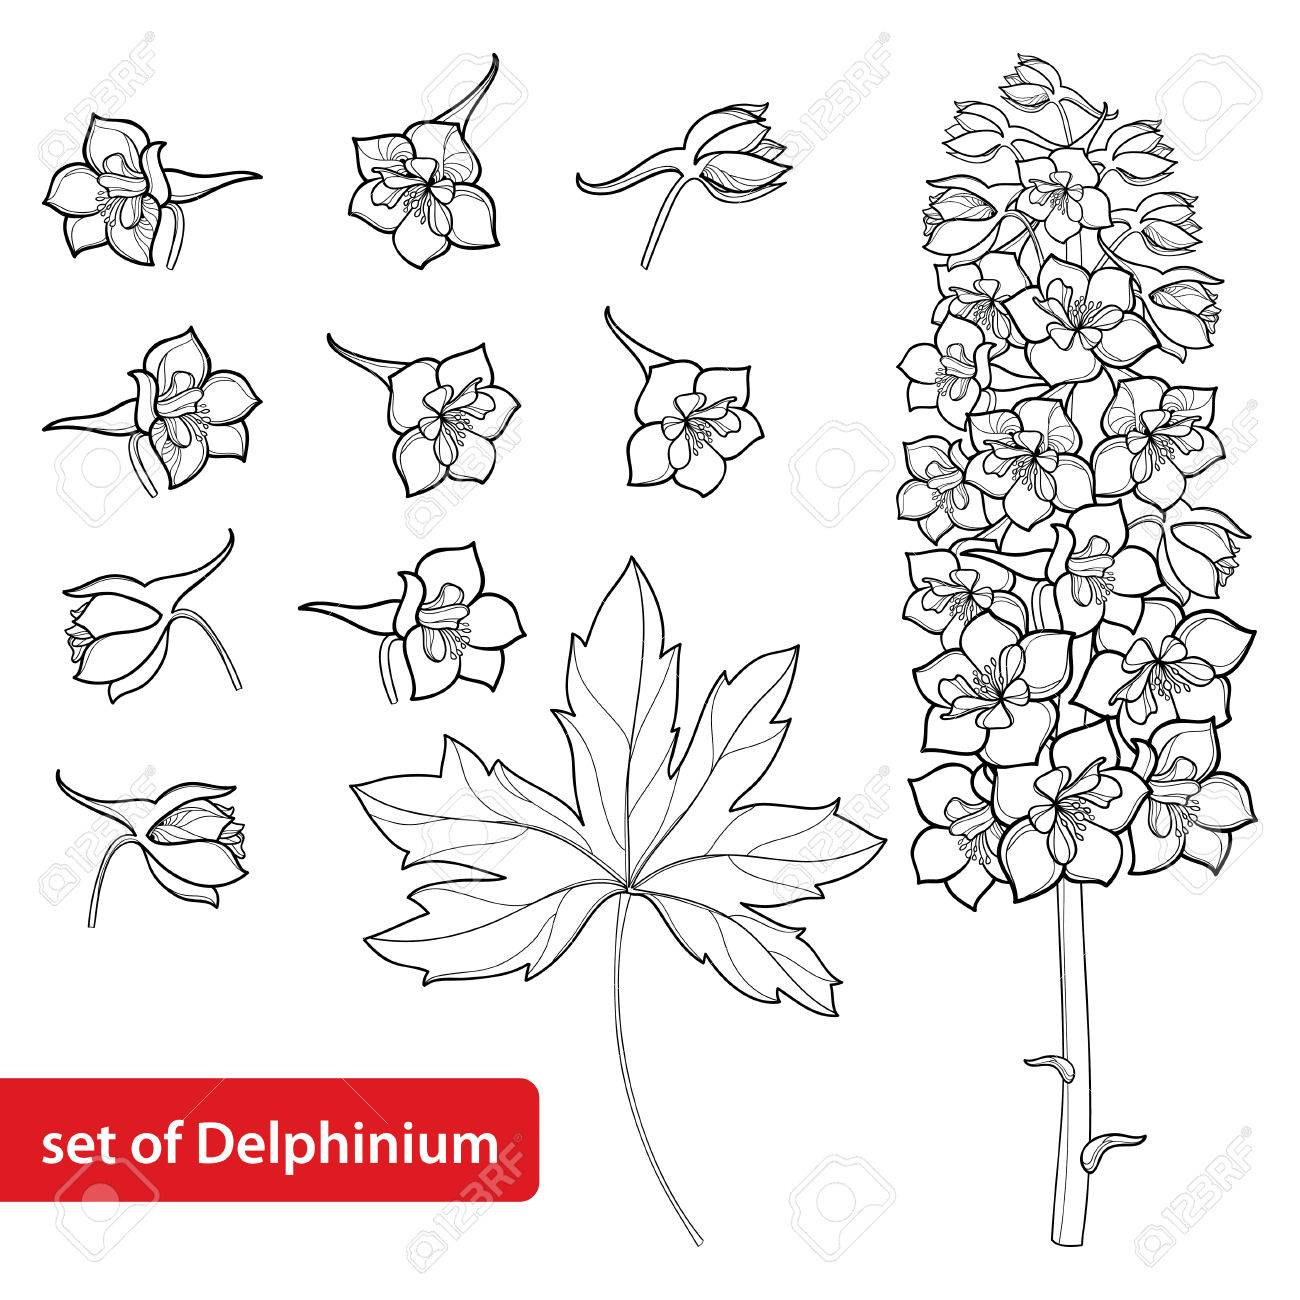 1300x1300 Set With Delphinium Or Larkspur. Flower, Bunch, Bud And Leaf